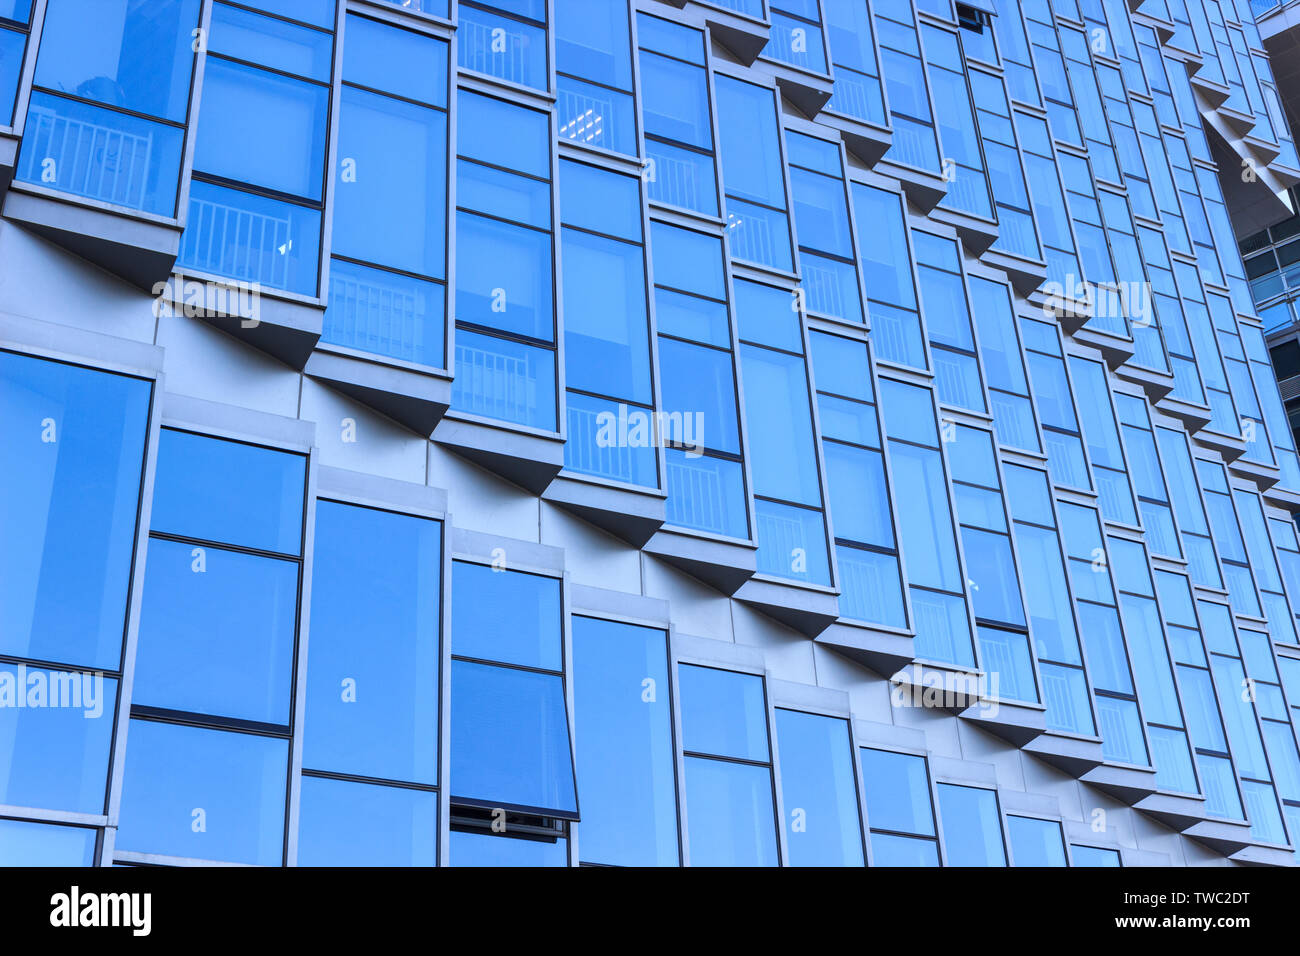 Modern architecture blue glass curtain wall Stock Photo